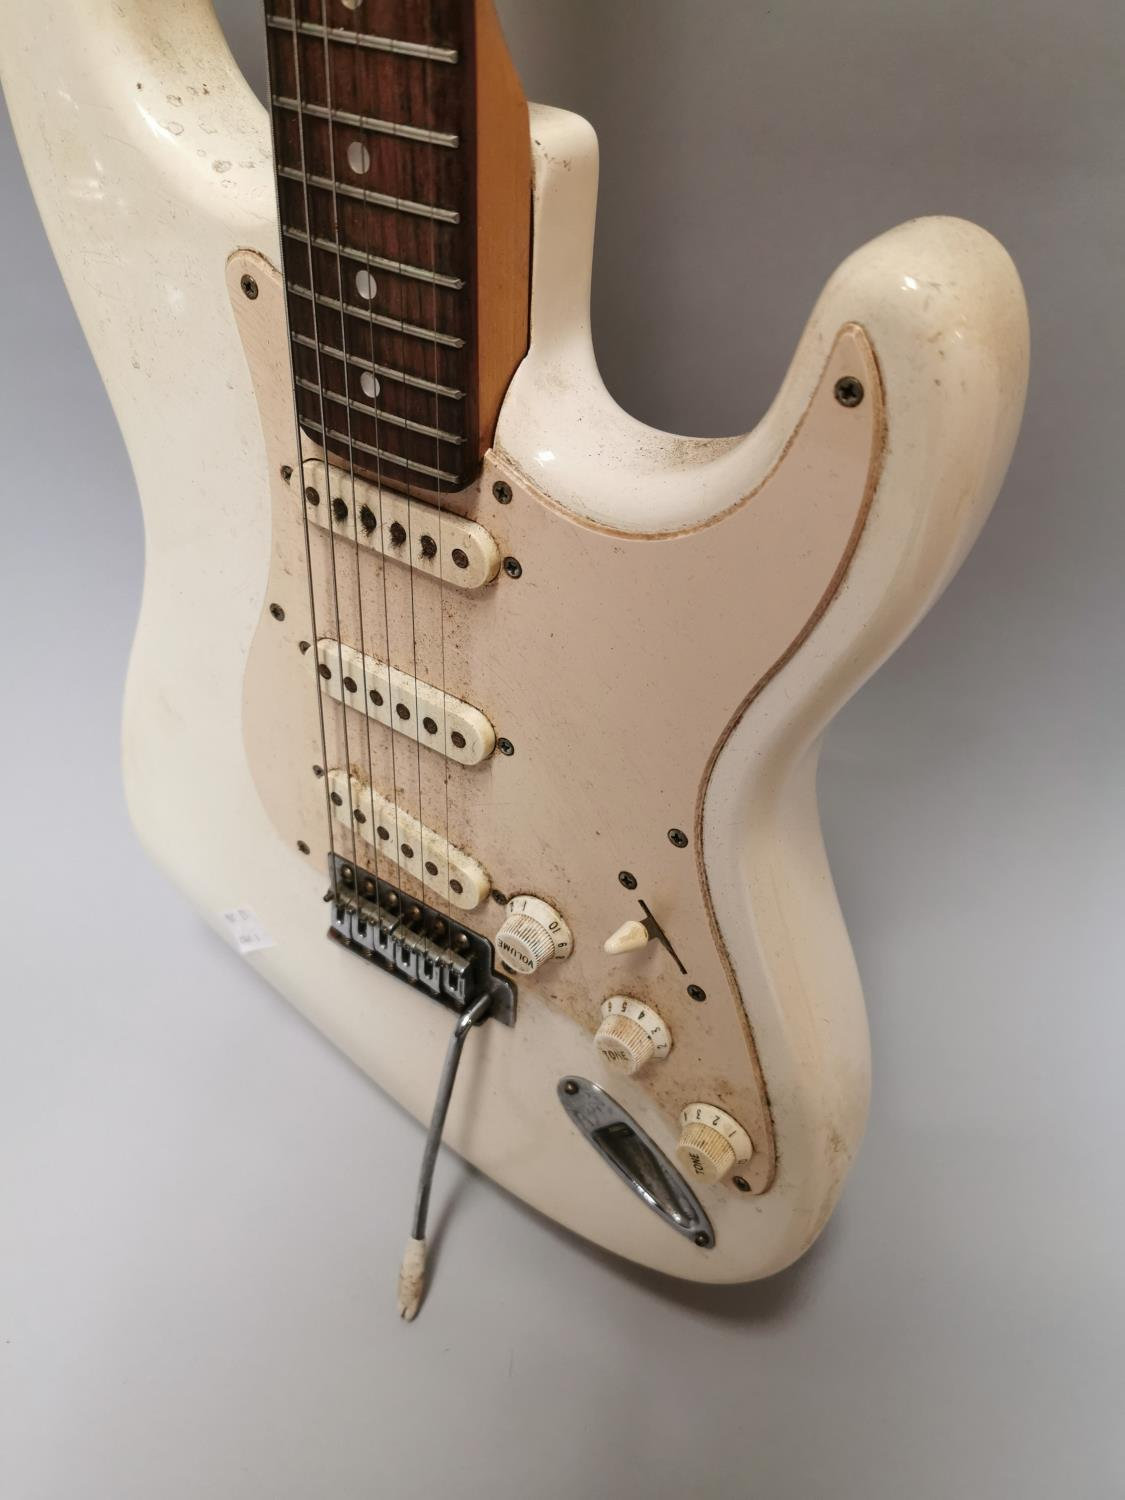 Squire Fender electric guitar - Image 4 of 5